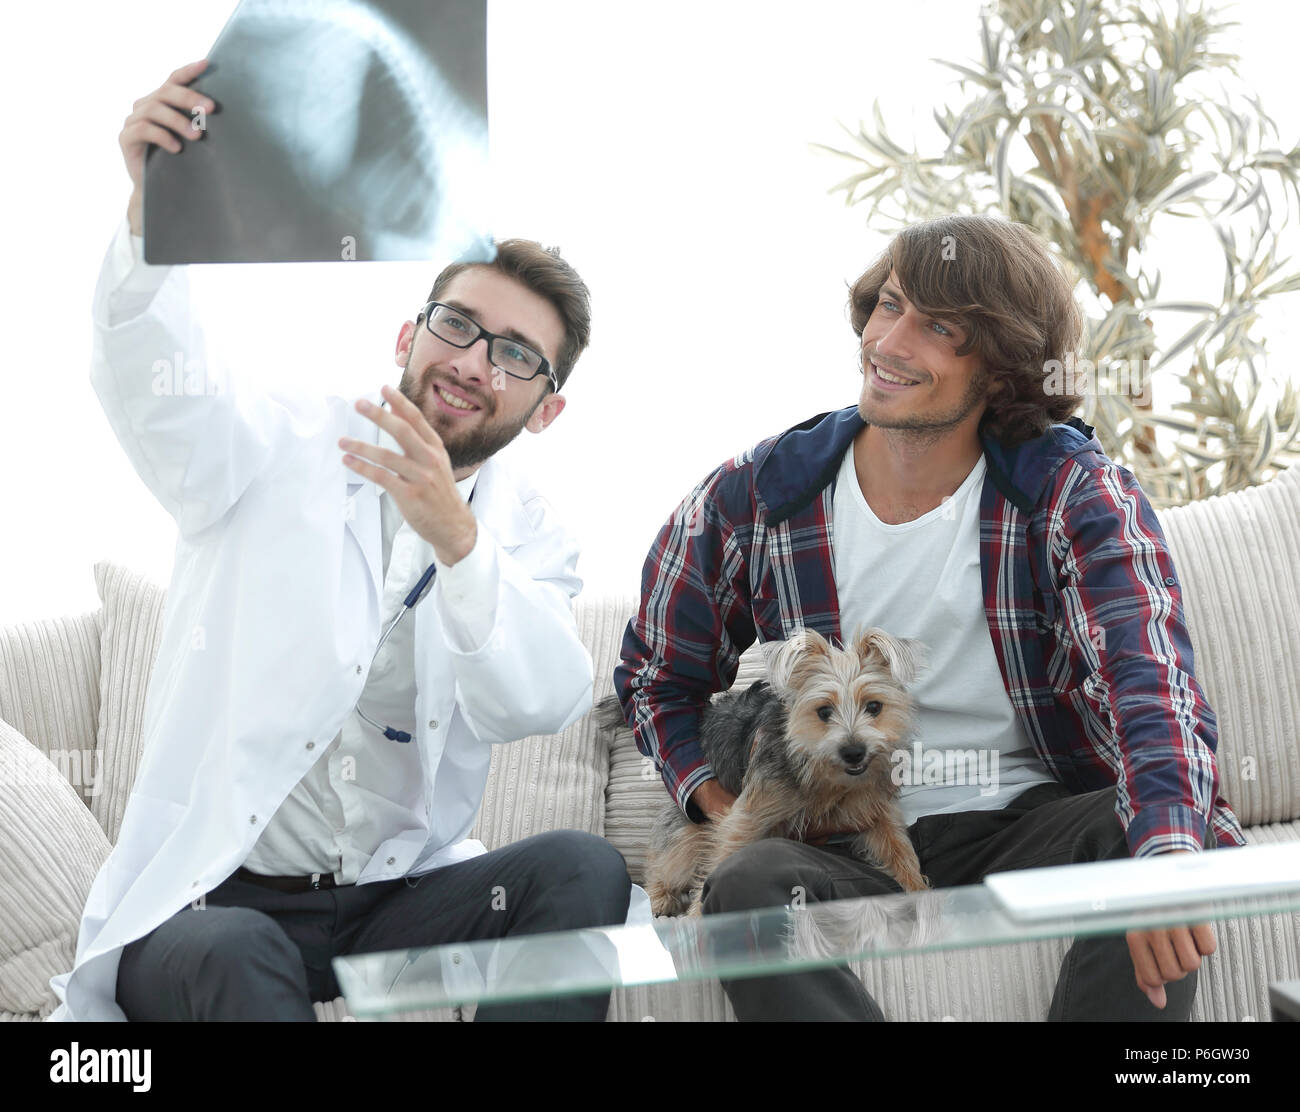 veterinarian showing an x-ray to the owner of the dog. - Stock Image